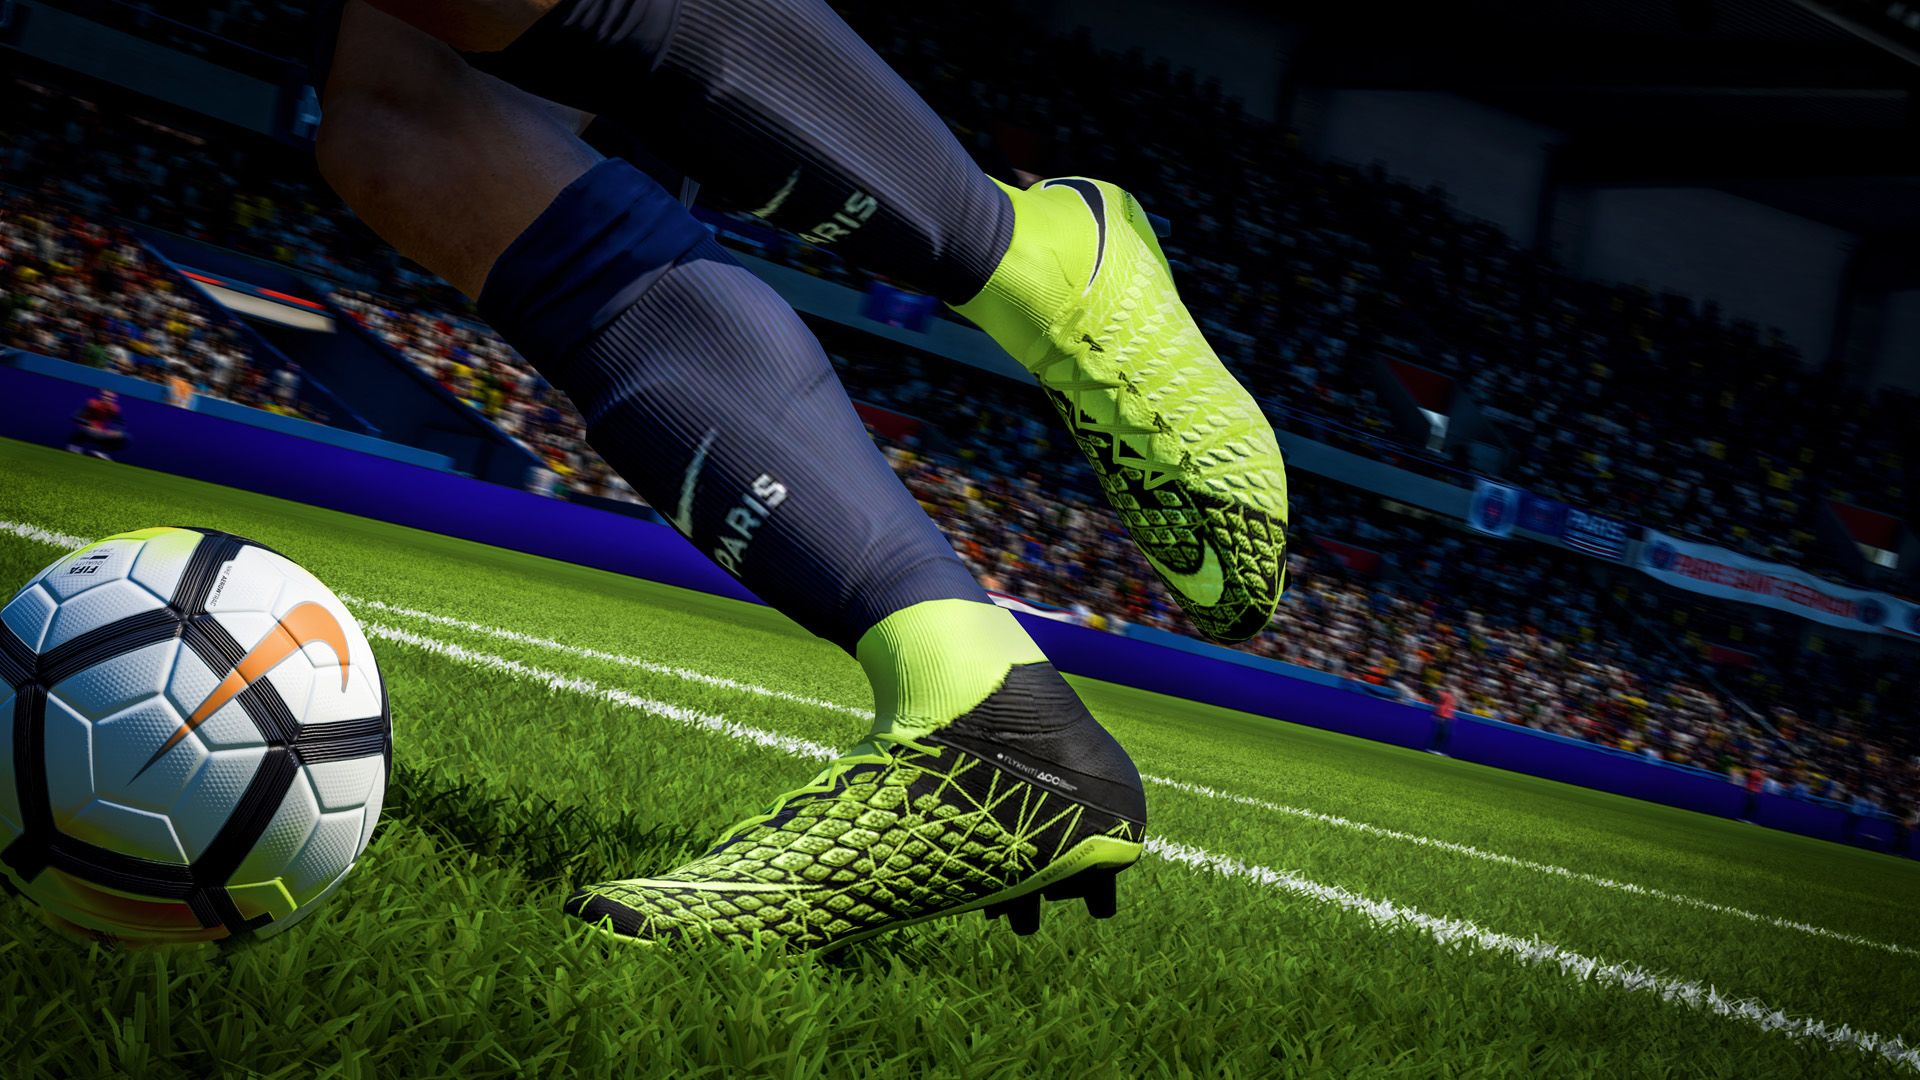 soccer nike on sale gt off43 discounts